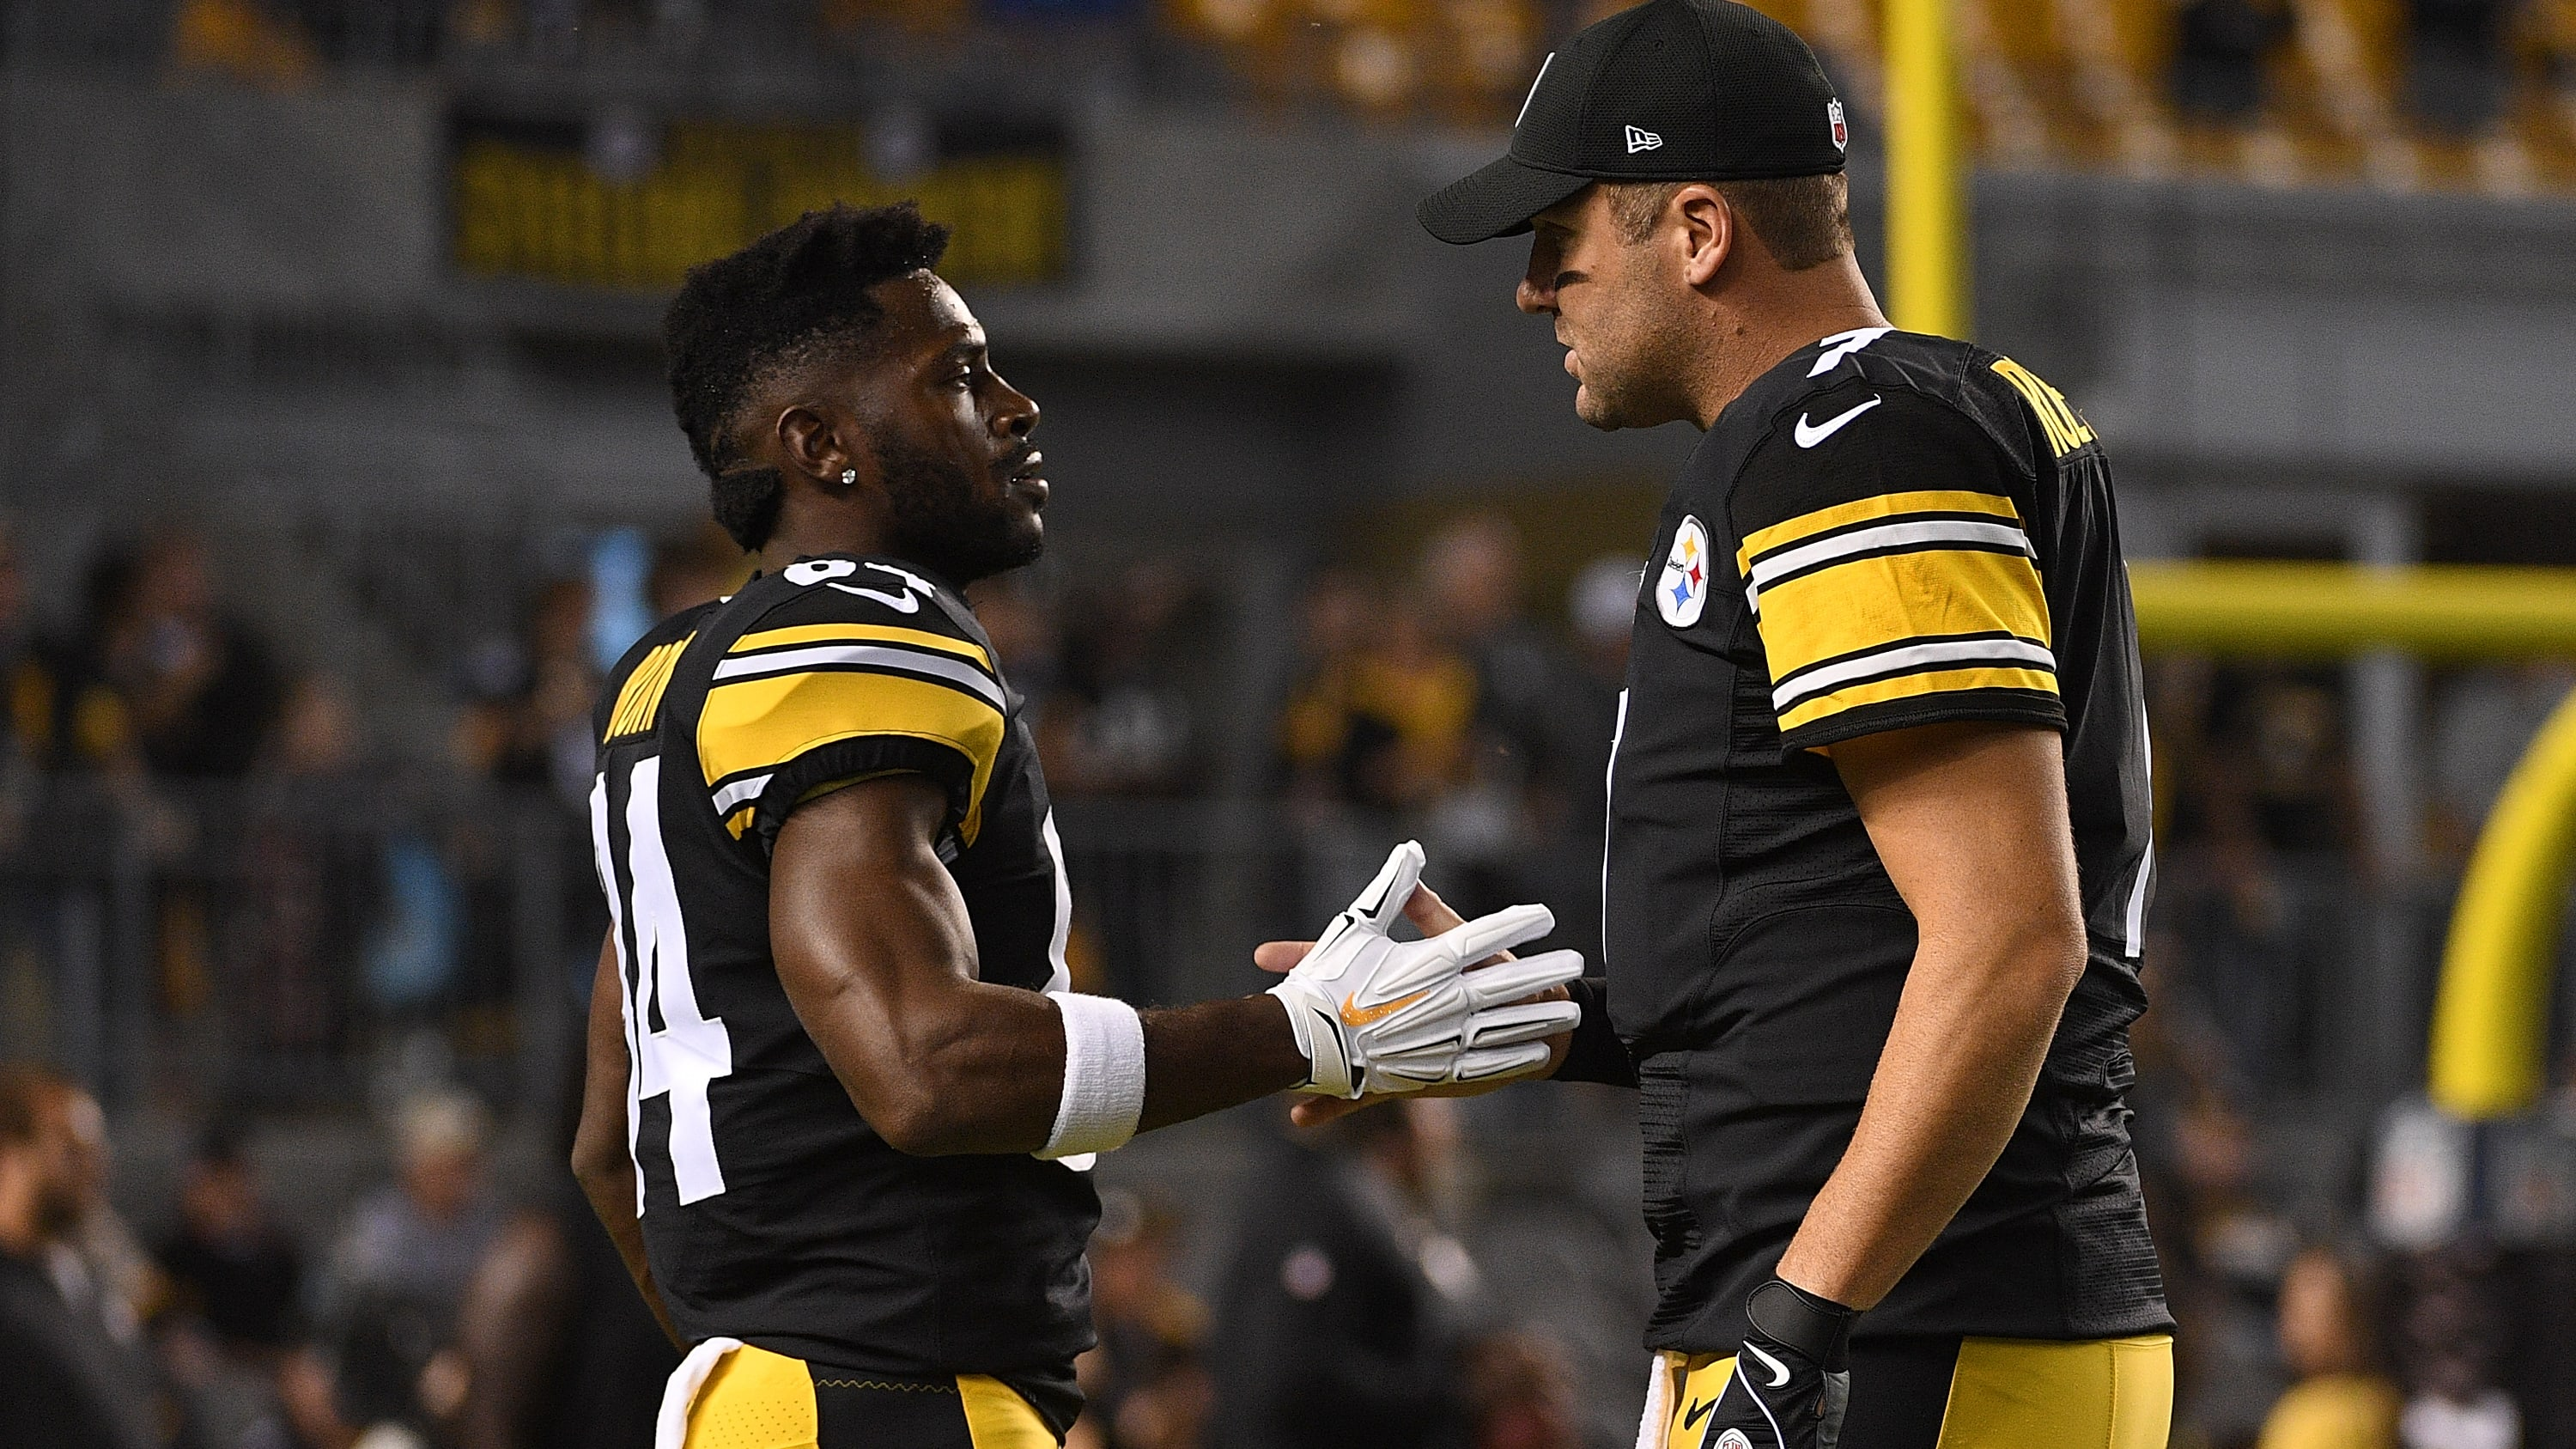 PITTSBURGH, PA - SEPTEMBER 30: Ben Roethlisberger #7 of the Pittsburgh Steelers talks with Antonio Brown #84 during warmups before the game against the Baltimore Ravens at Heinz Field on September 30, 2018 in Pittsburgh, Pennsylvania. (Photo by Justin Berl/Getty Images)